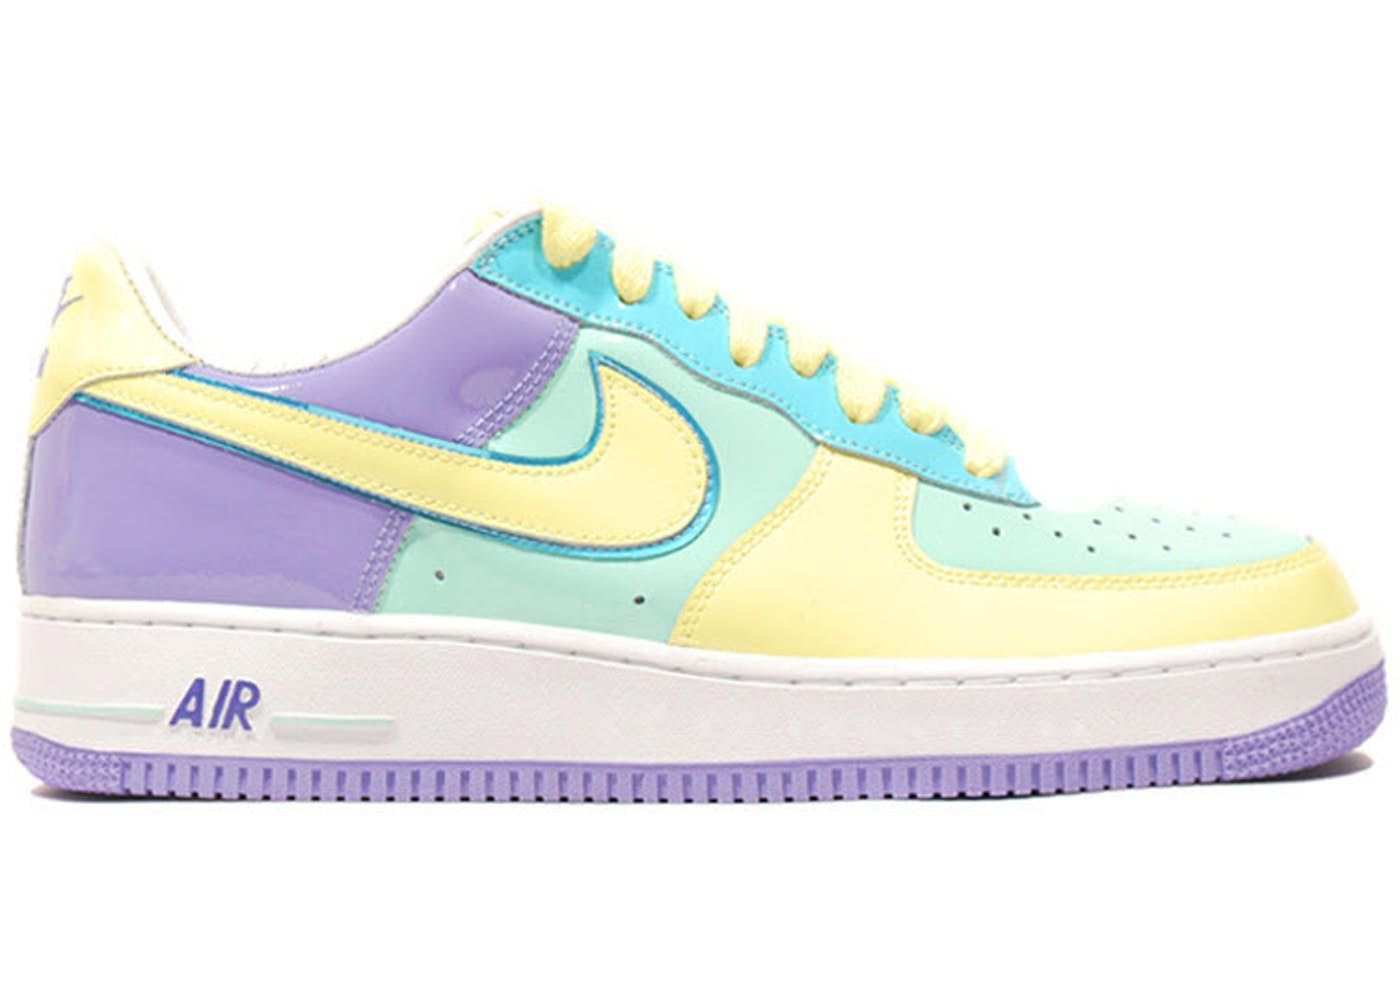 Nike Force 1 Low Easter Egg (2006) | Trendy shoes, Cute